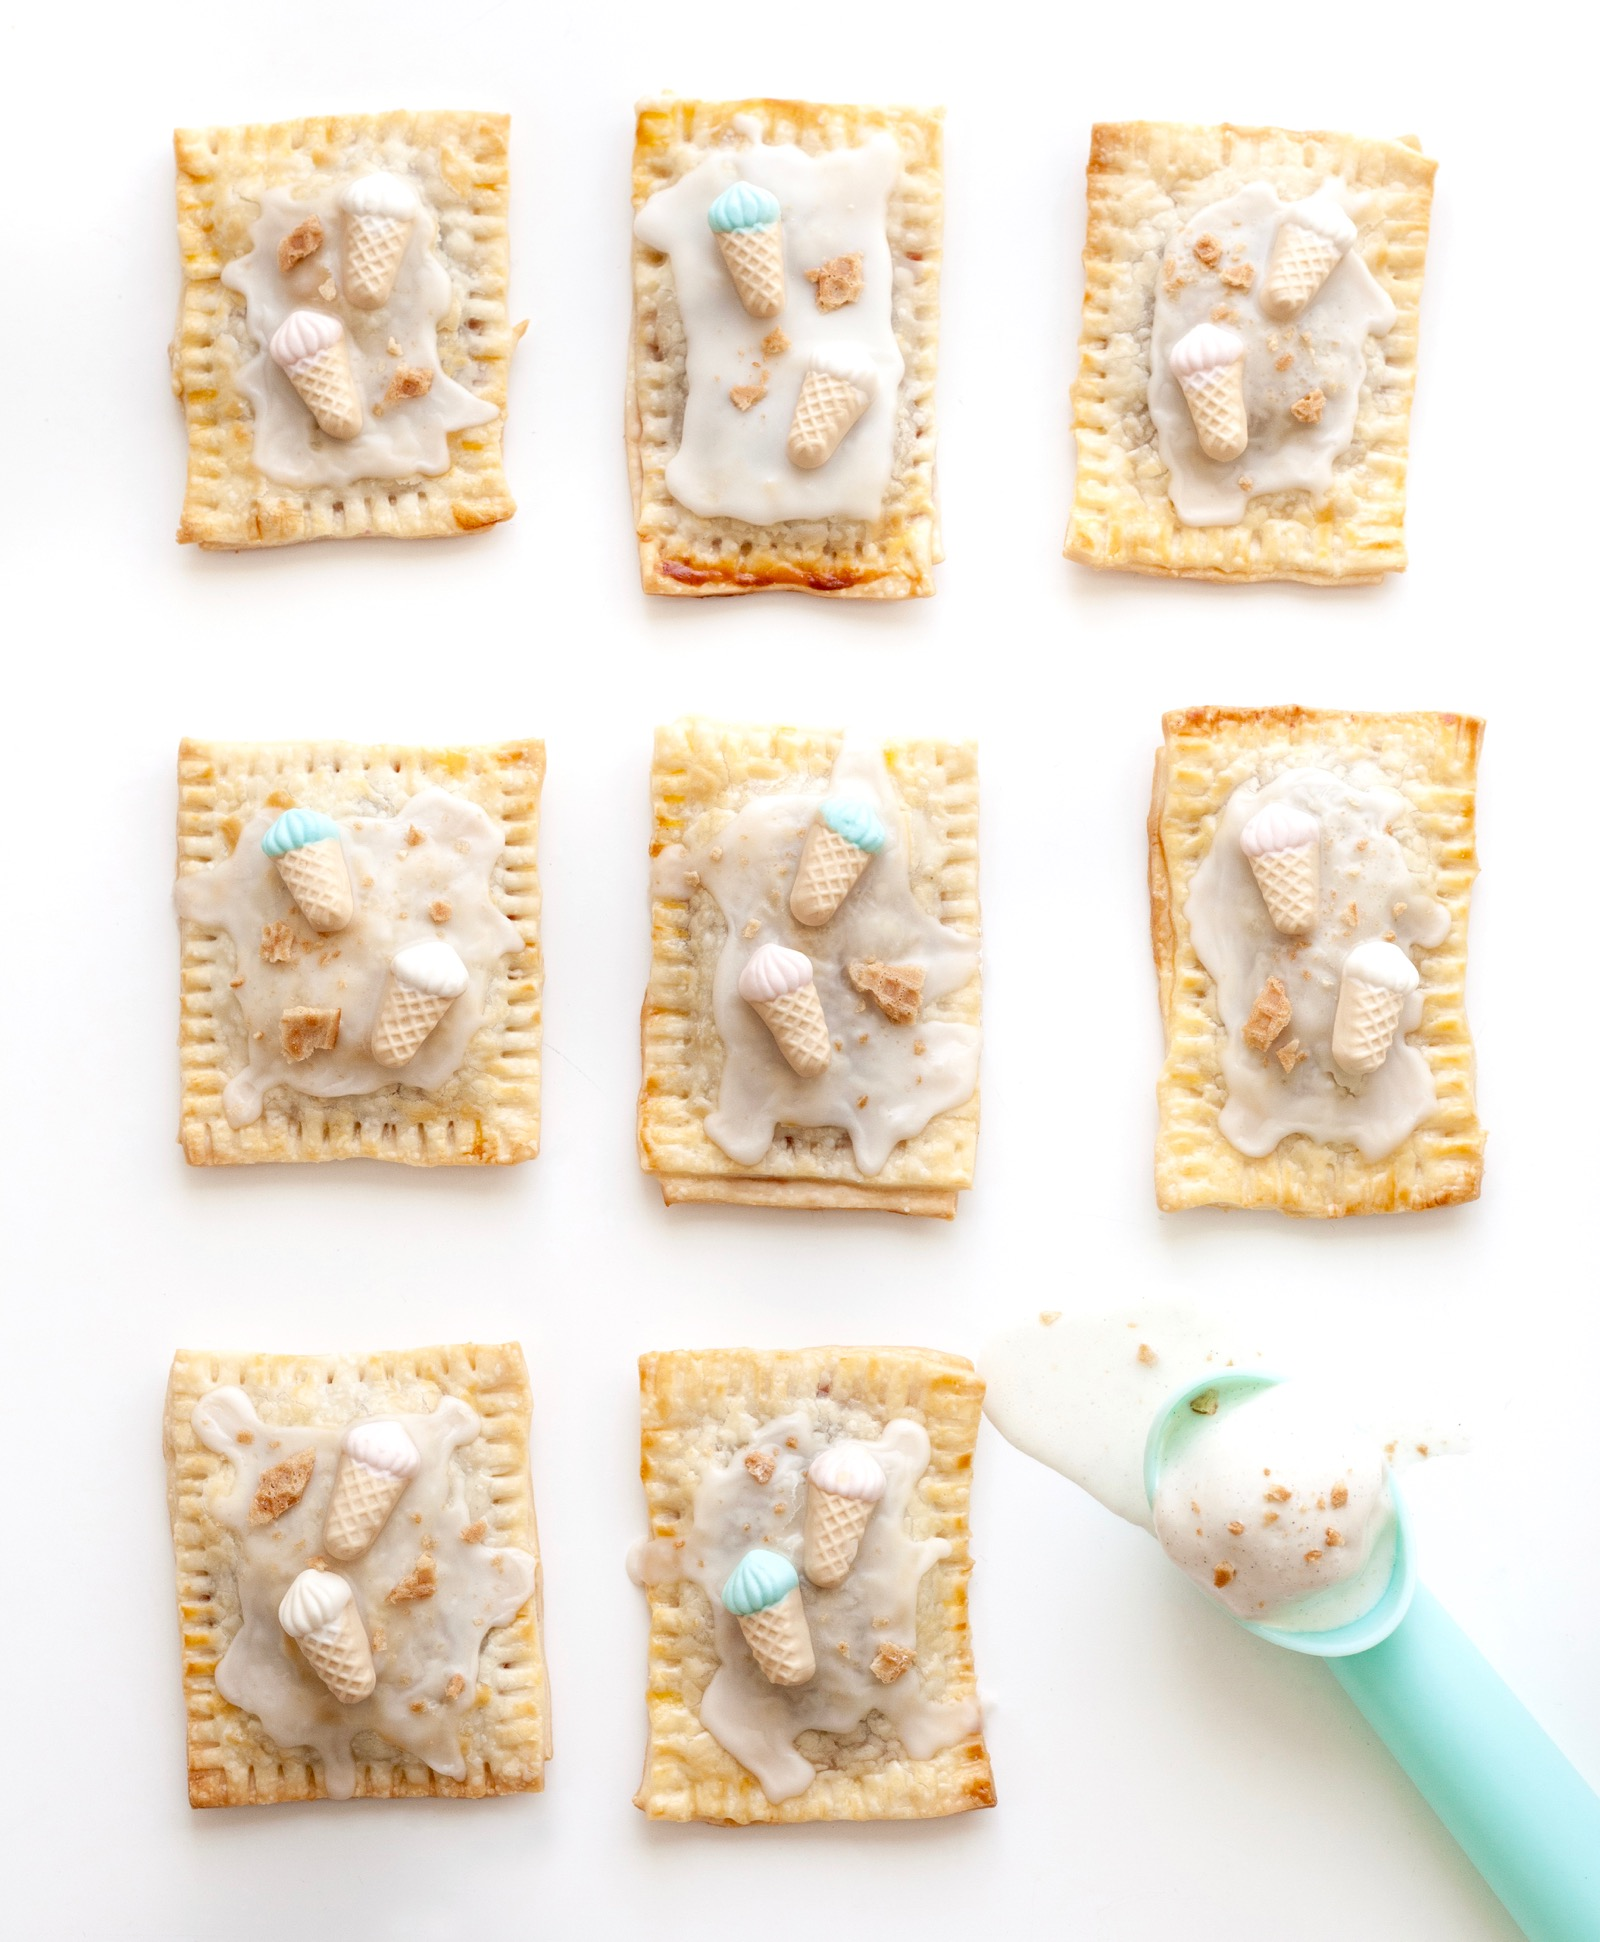 Ice Cream Flavored Pop-Tarts Recipe